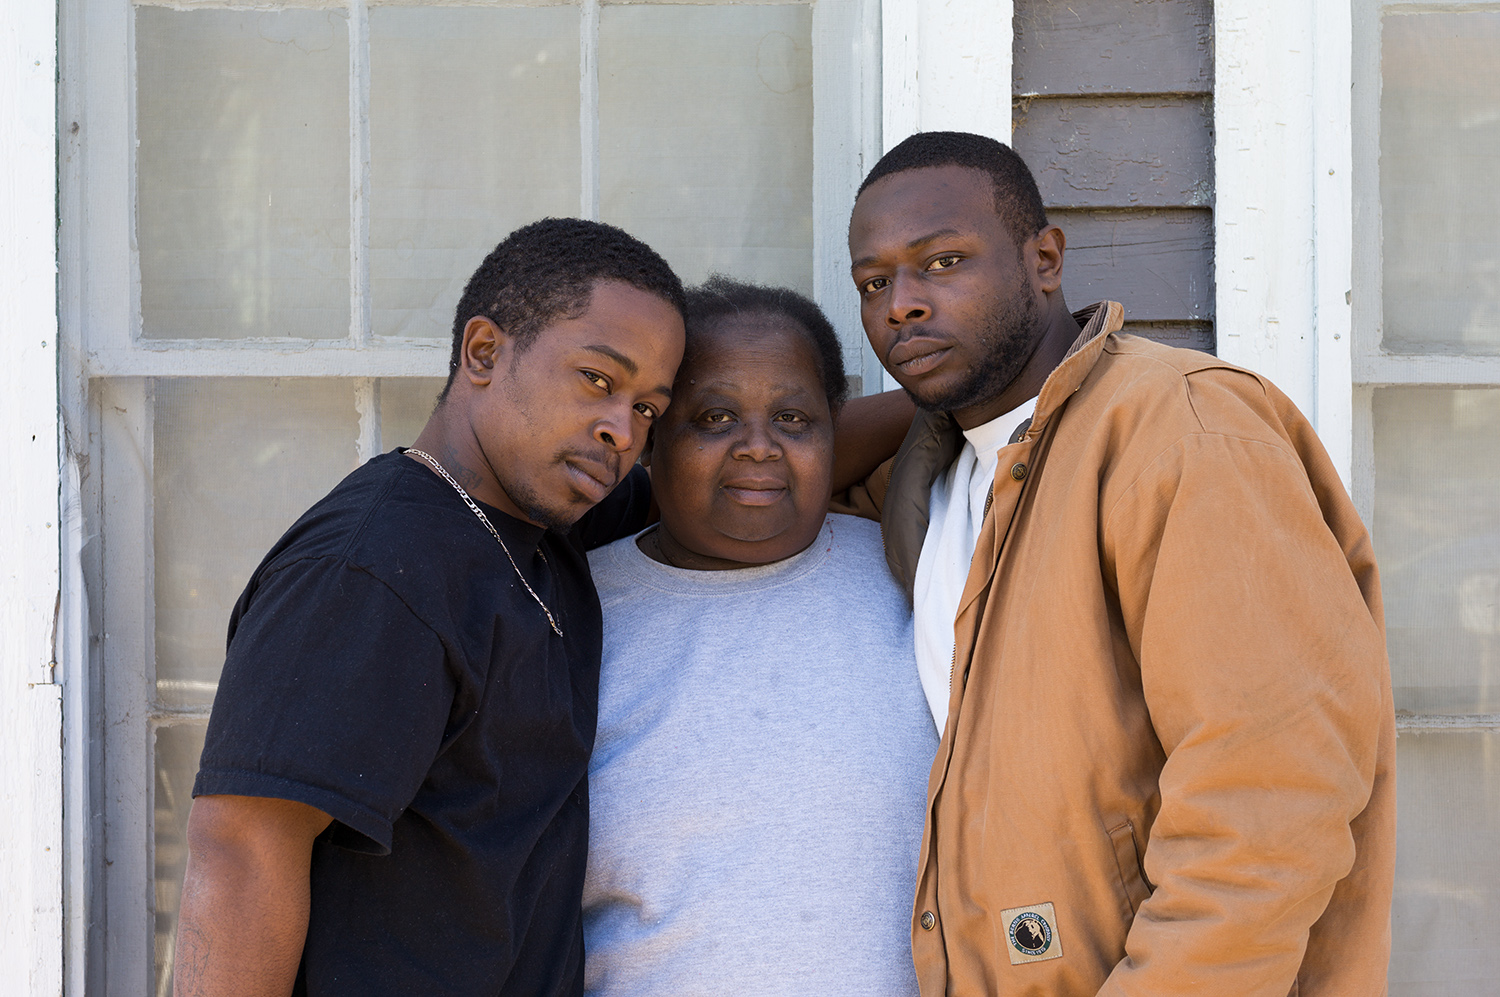 L1004876    us mf Darnell Mitchell, (mother) Tayana Chandler &Dewayne Reynolfs.jpg